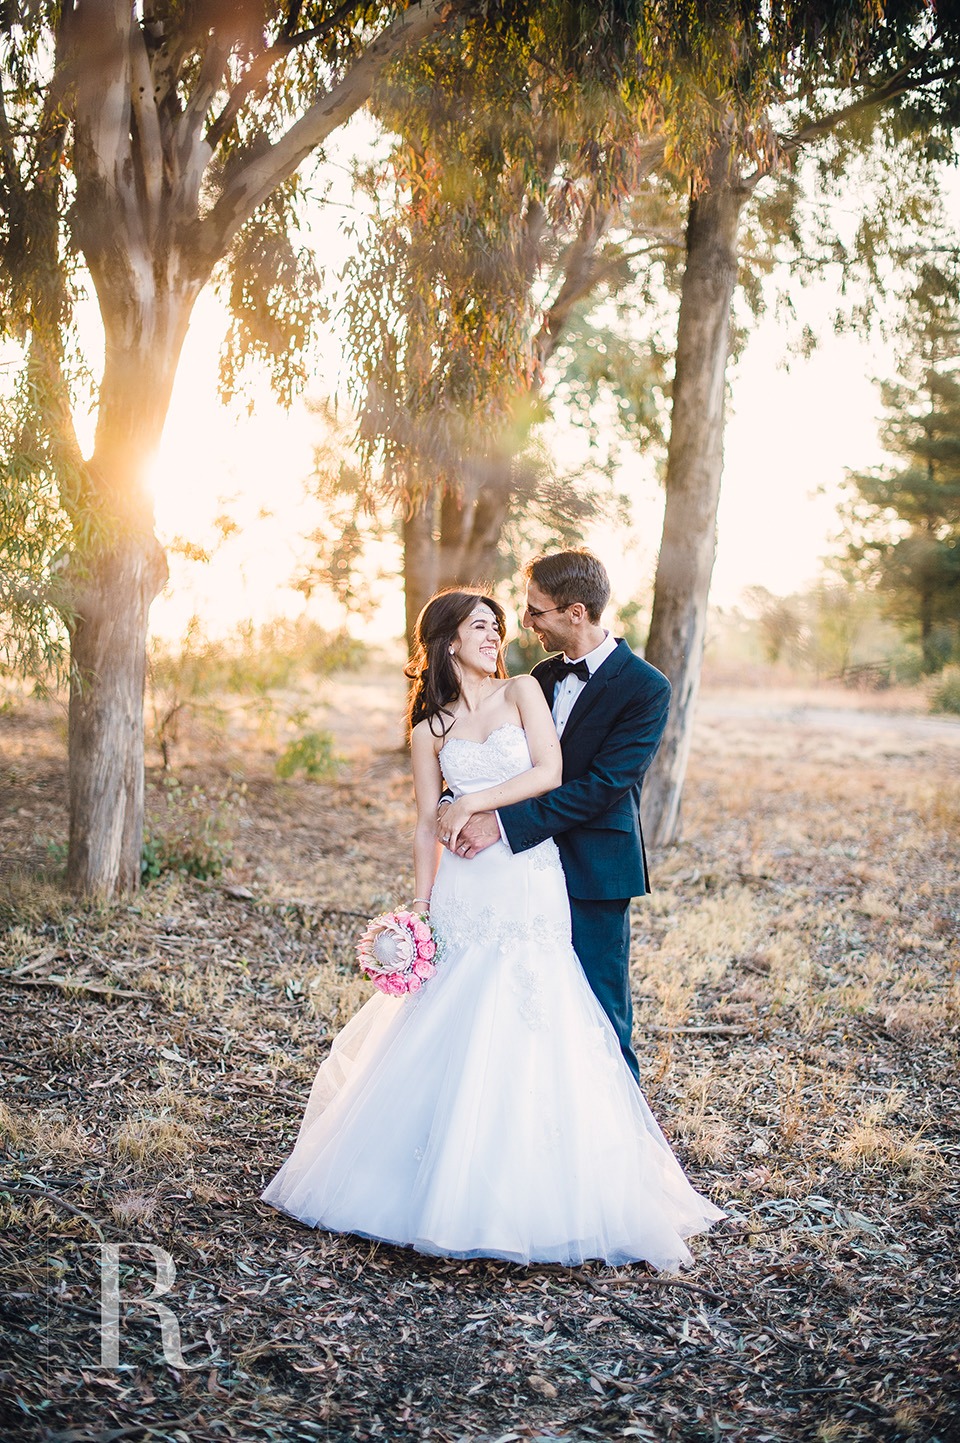 RYAN PARKER PHOTOGRAPHY_WEDDINGS_PRETORIA_ROSEMARY HILL_M&N -0433.jpg